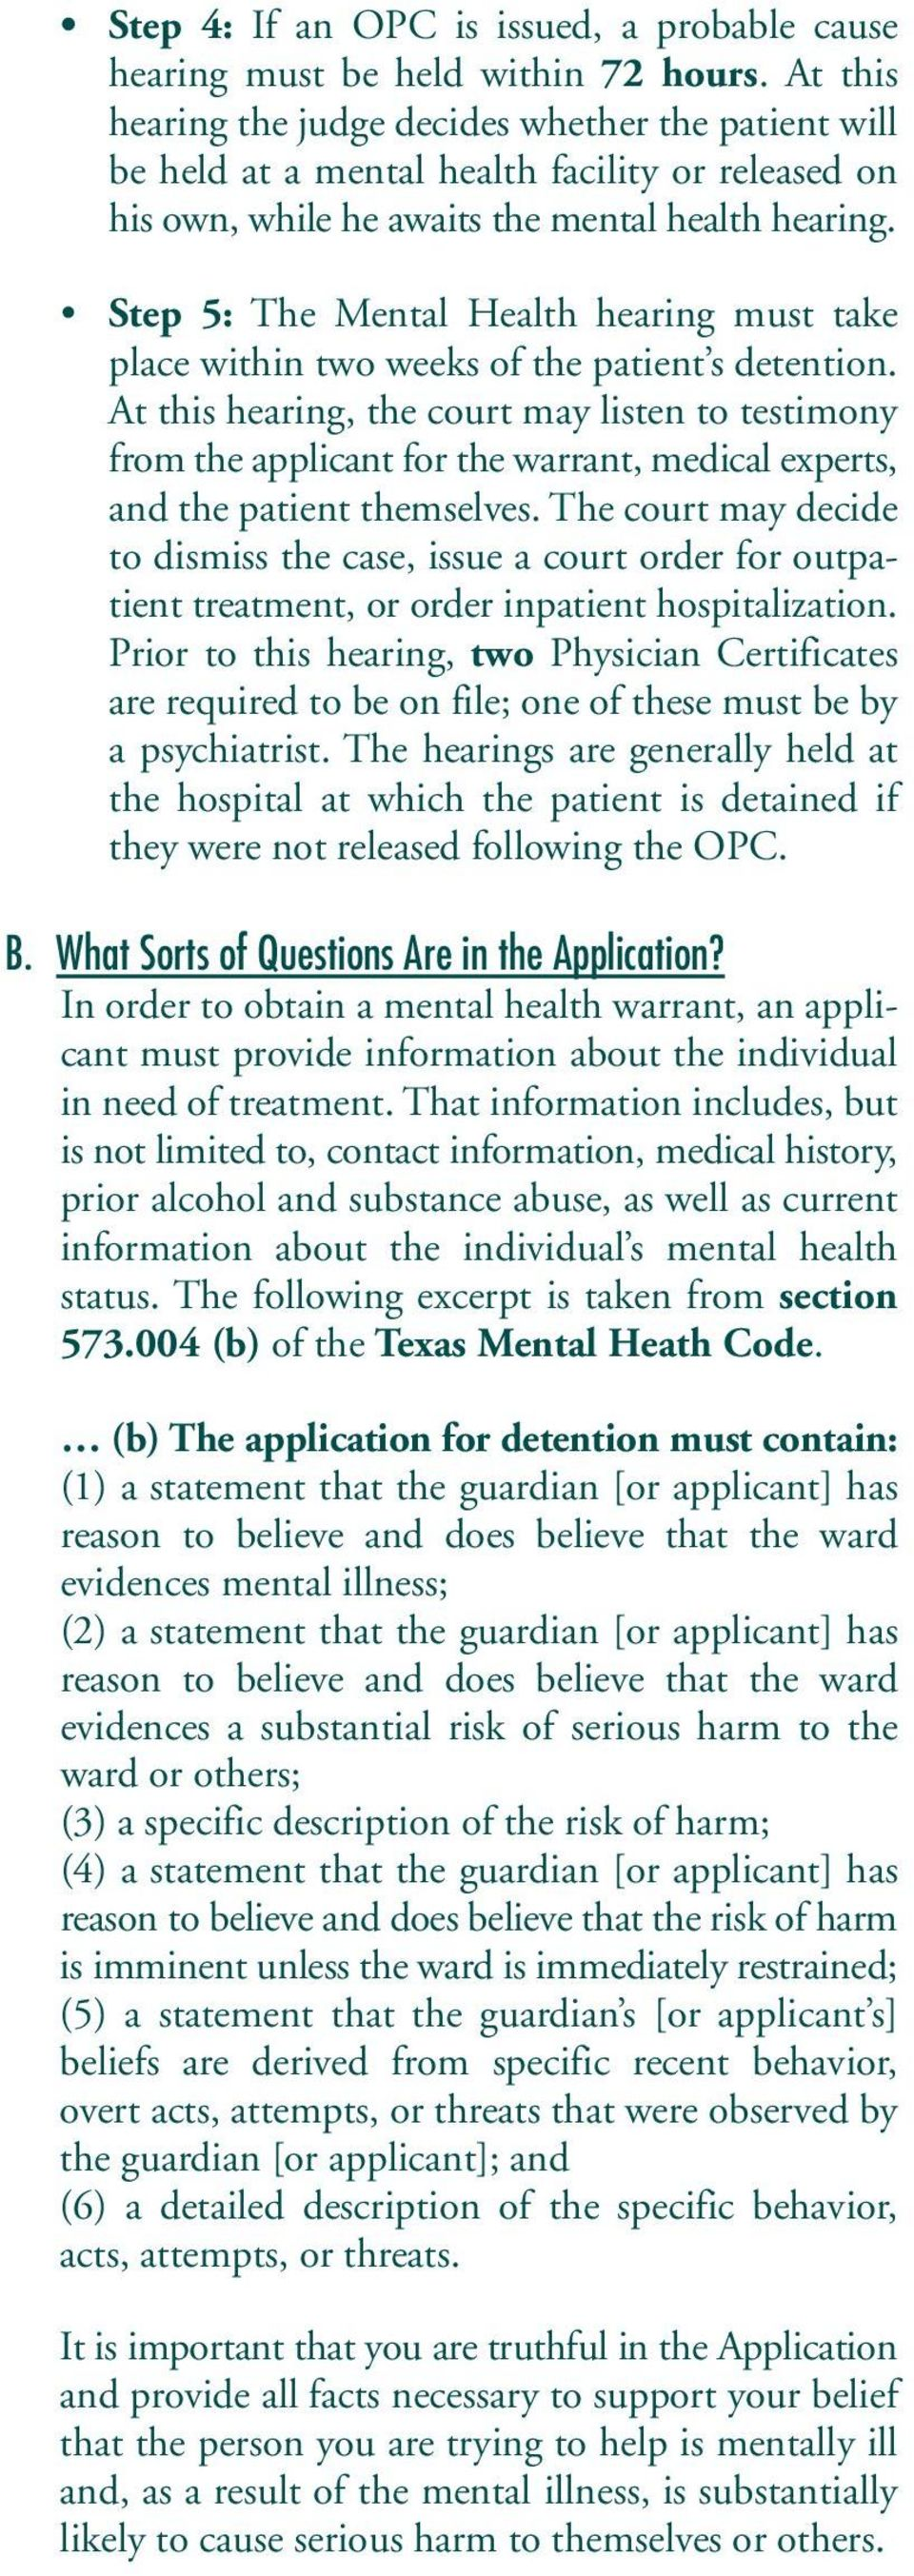 Step 5: The Mental Health hearing must take place within two weeks of the patient s detention.